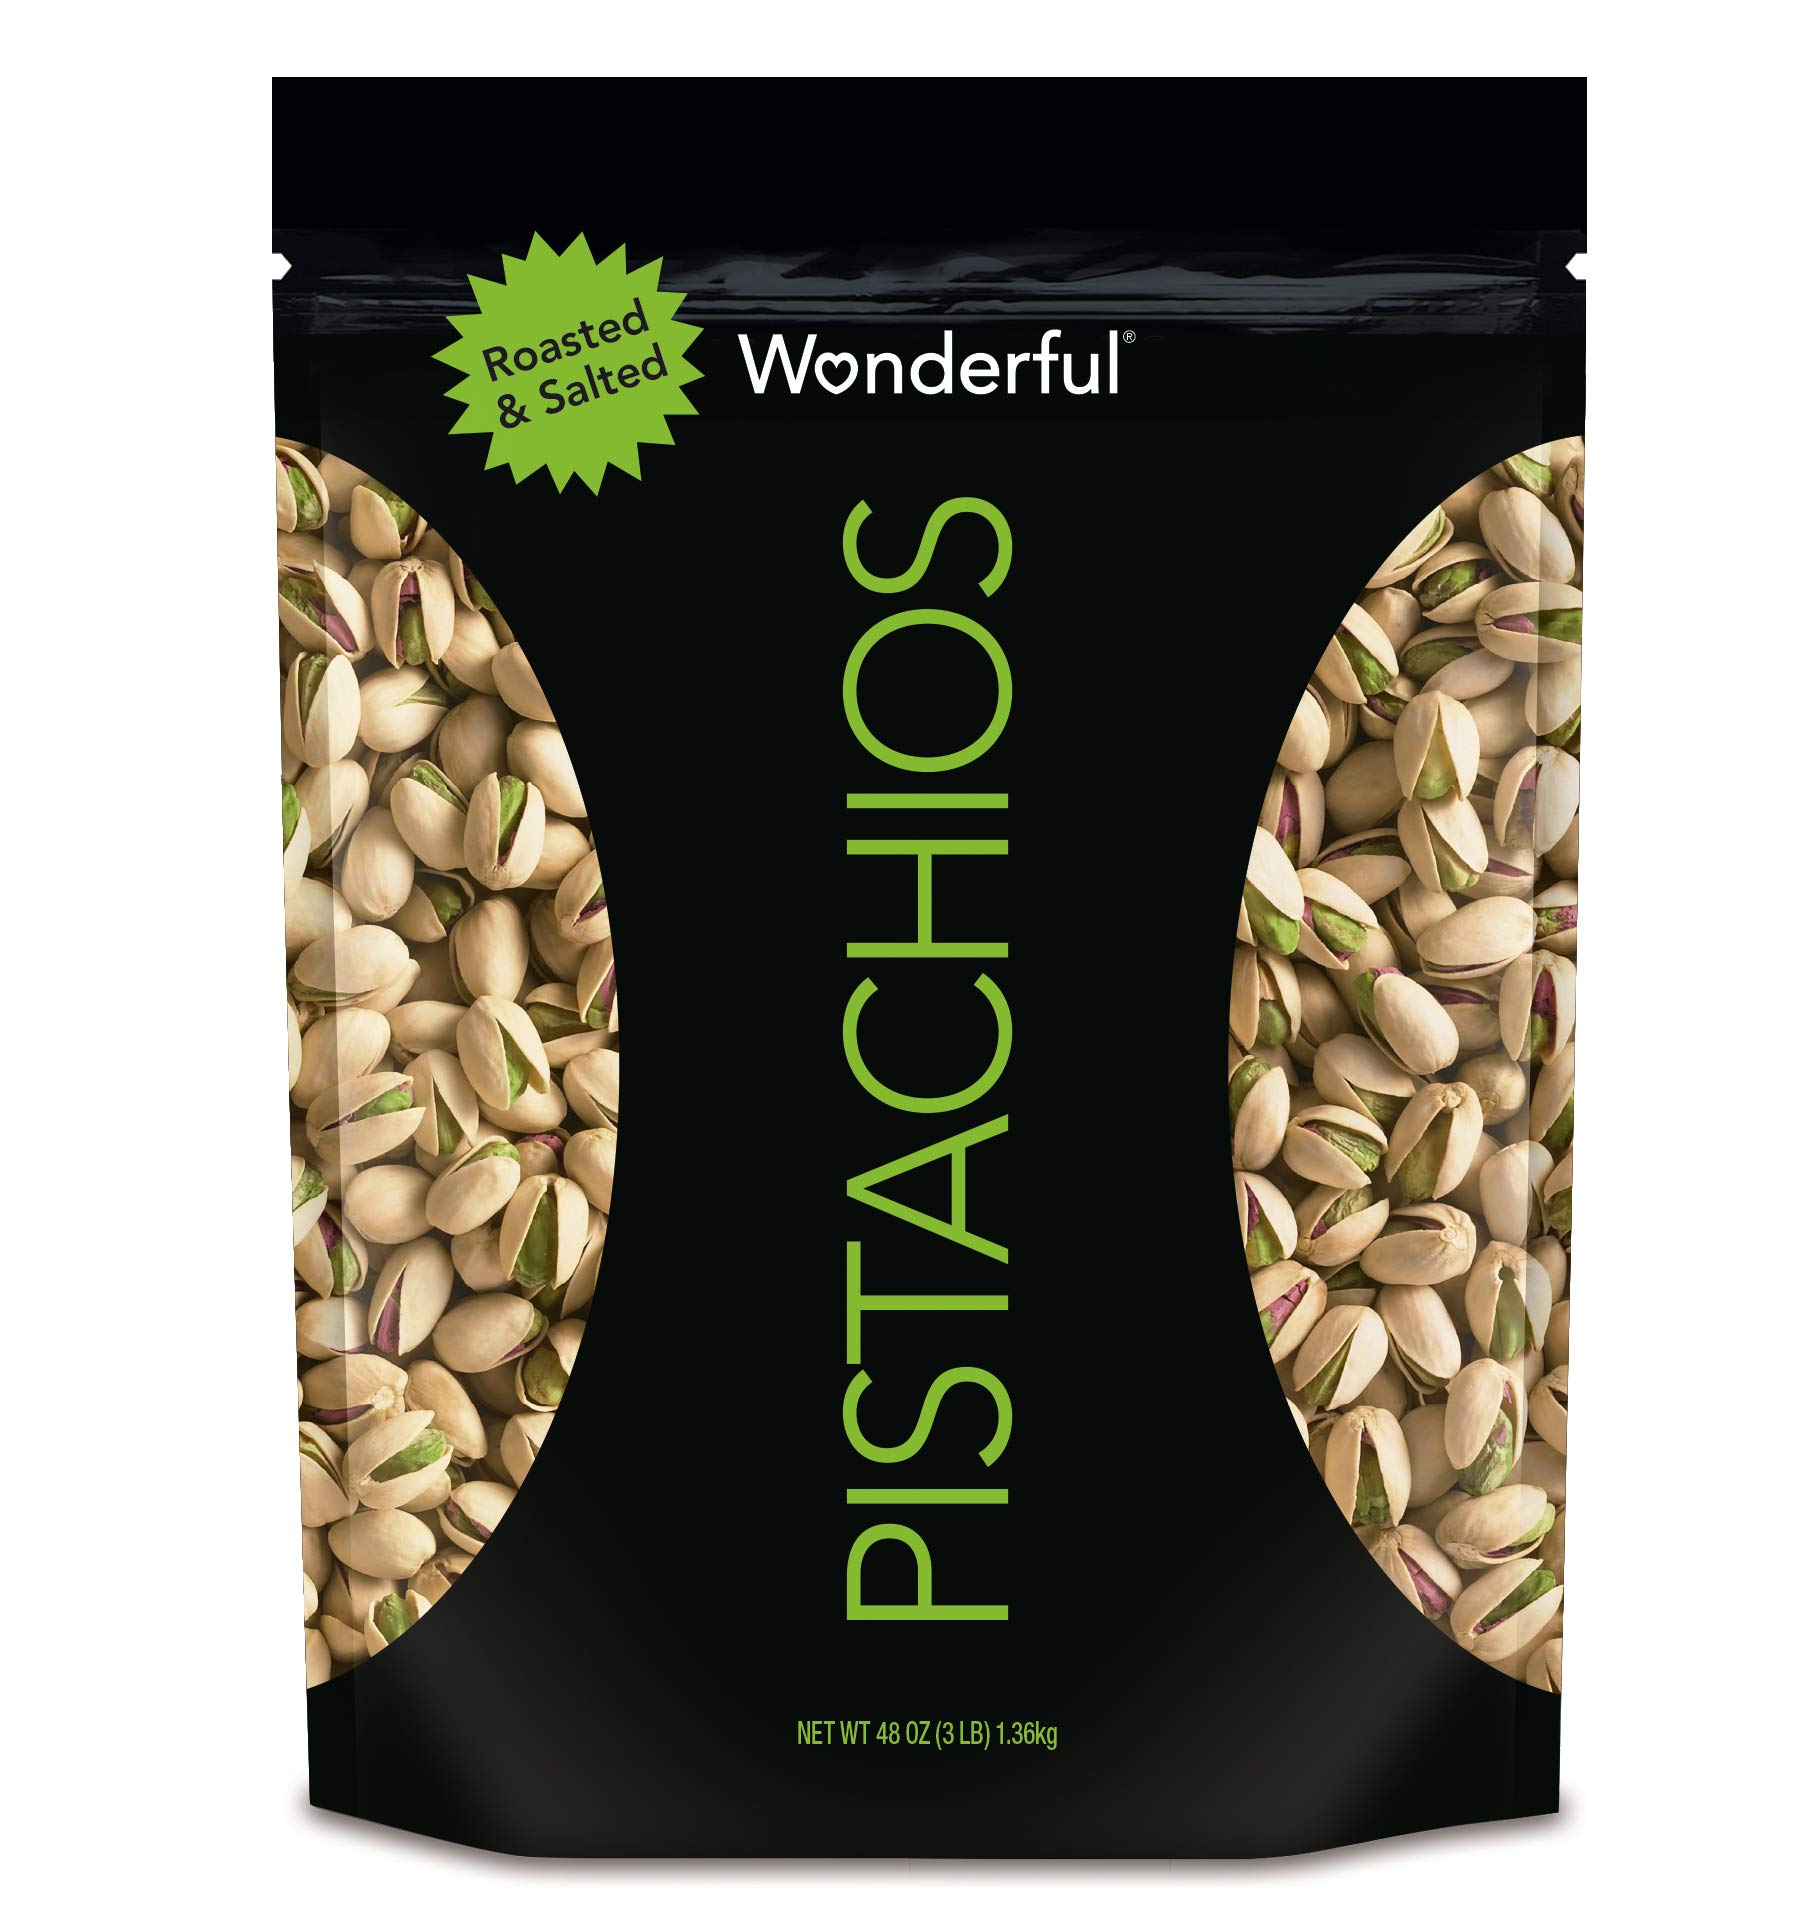 Wonderful Pistachios, Roasted & Salted, 48 oz Resealable Pouch by Wonderful Pistachios & Almonds